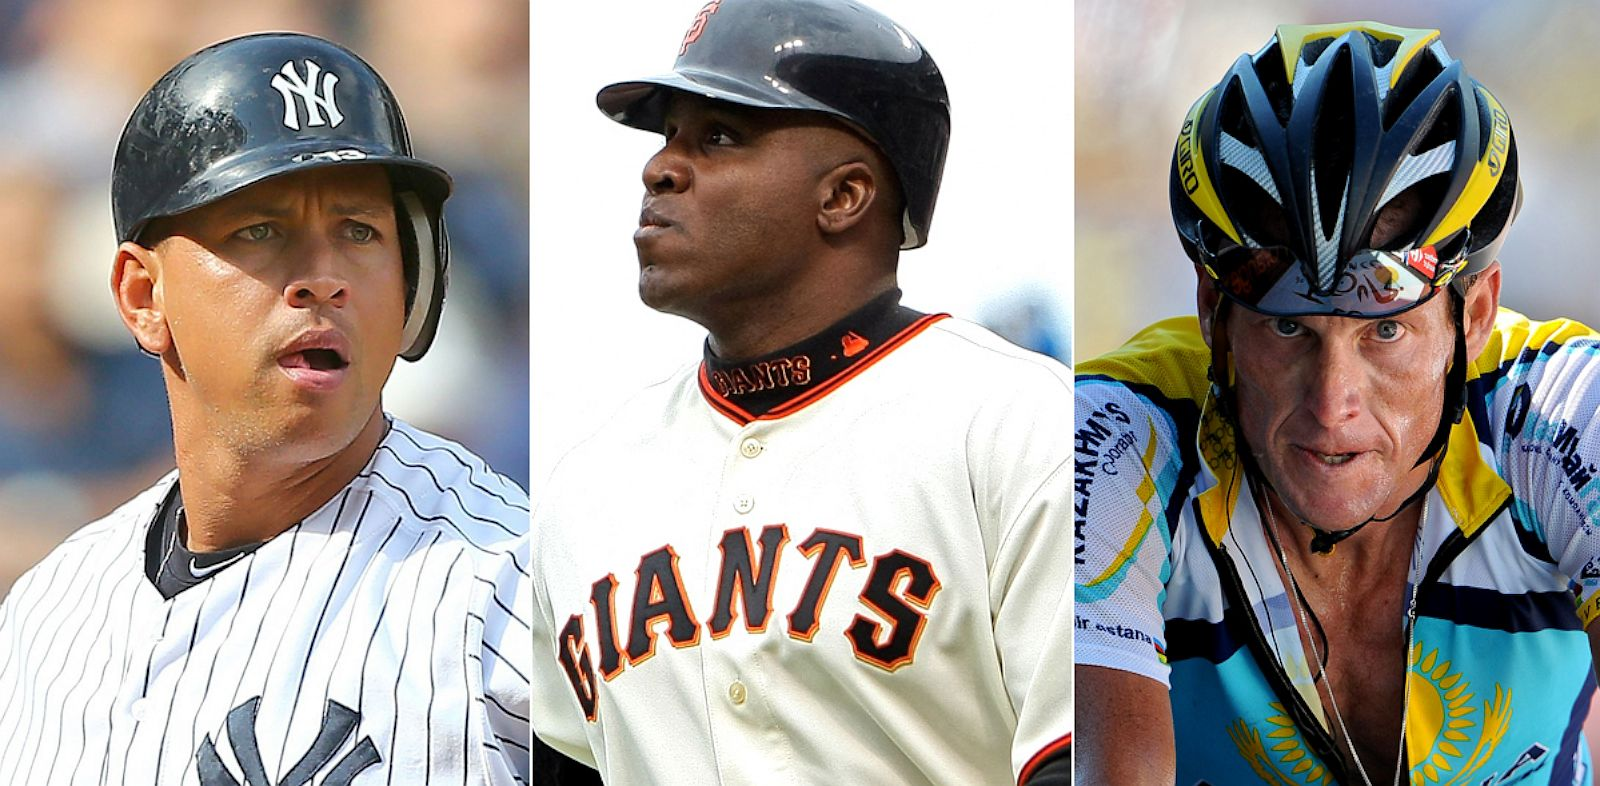 PHOTO: Alex Rodriguez, Barry Bonds and Lance Armstrong